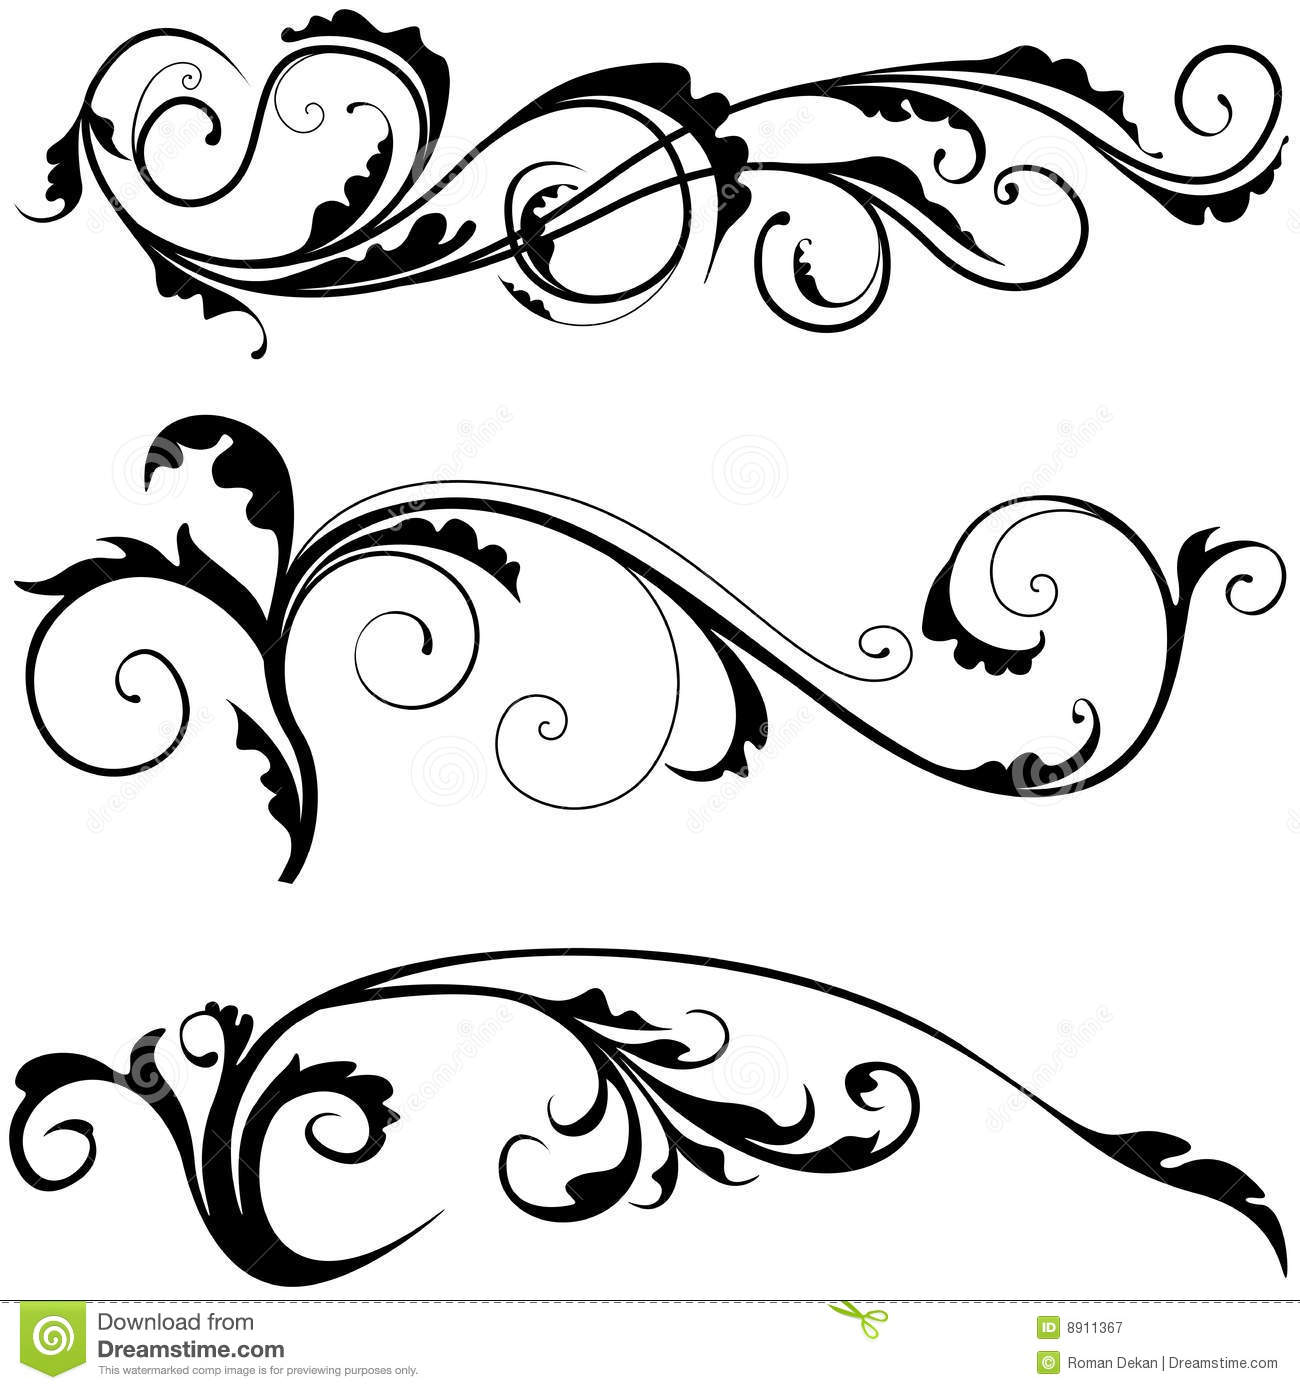 Decorazione floreale illustrazione vettoriale for Decorazione be u